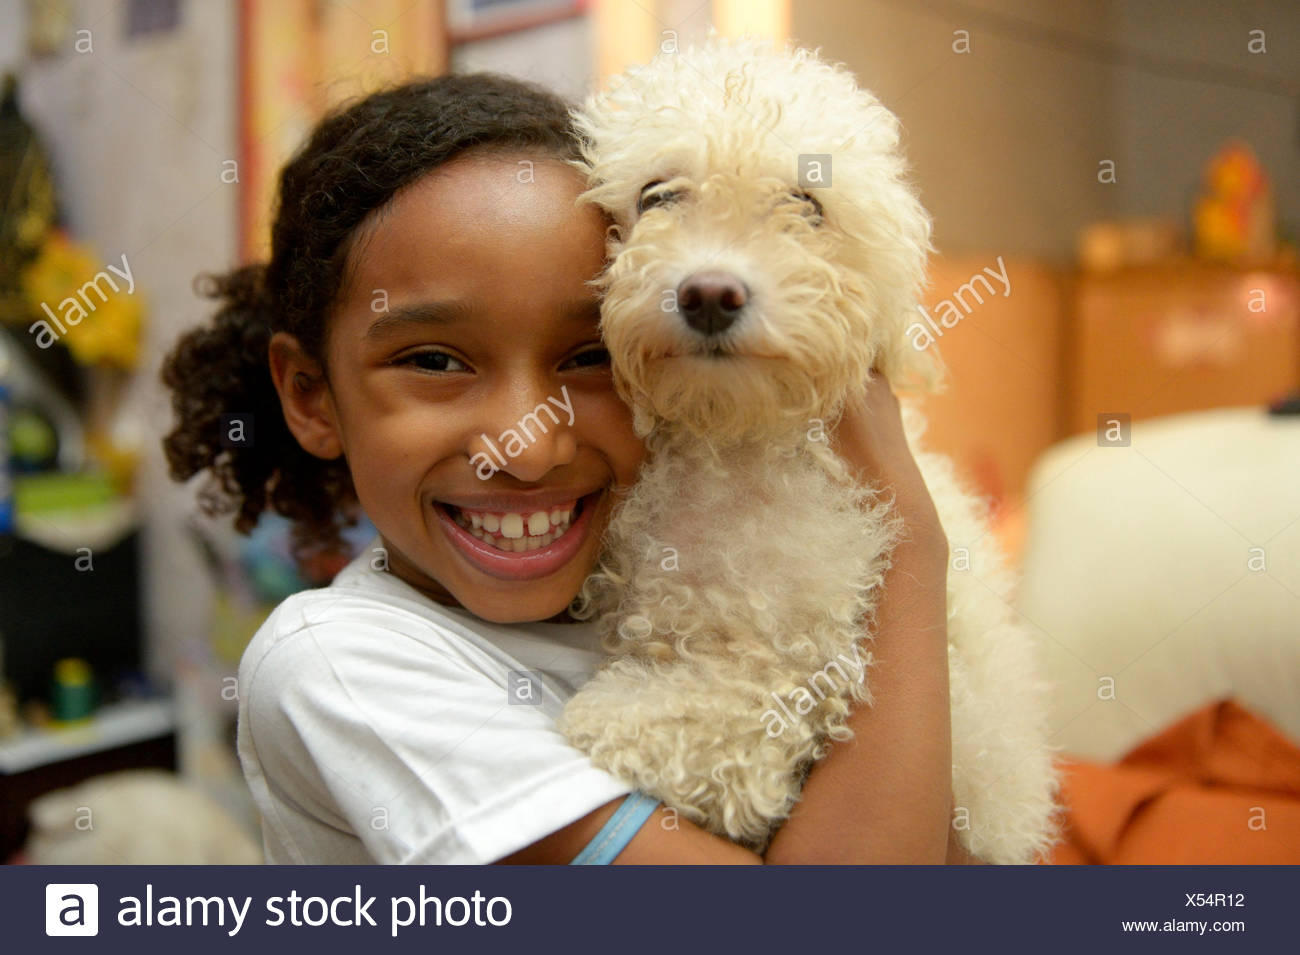 Girl with a poodle in a slum or favela, Jacarezinho favela, Rio de Janeiro, Rio de Janeiro State, Brazil - Stock Image